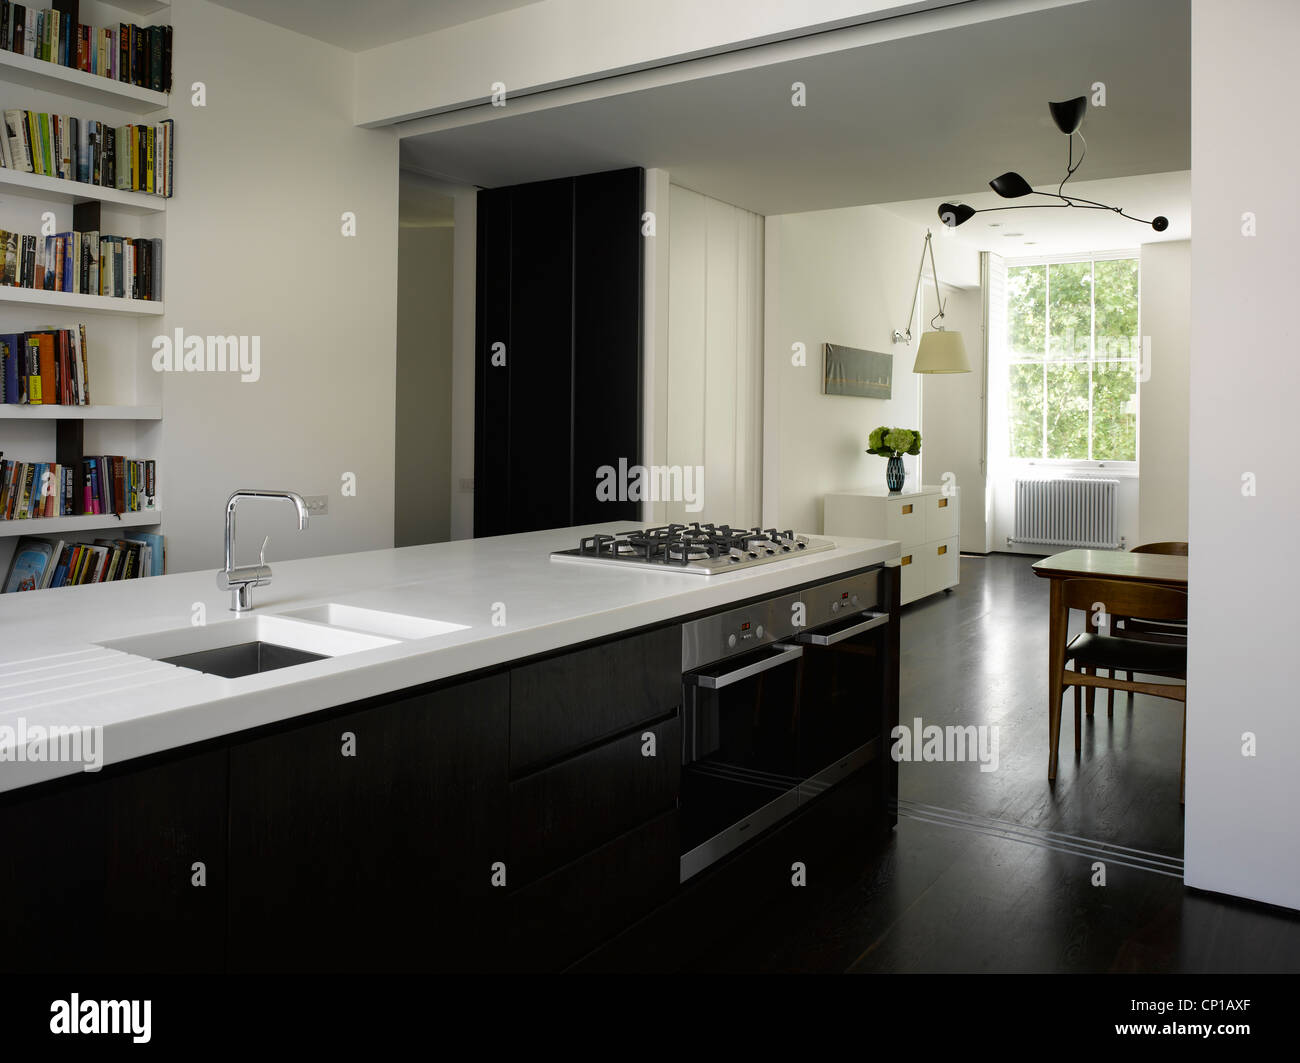 Dual aspect kitchen living room in Bayswater apartment, London, UK. - Stock Image